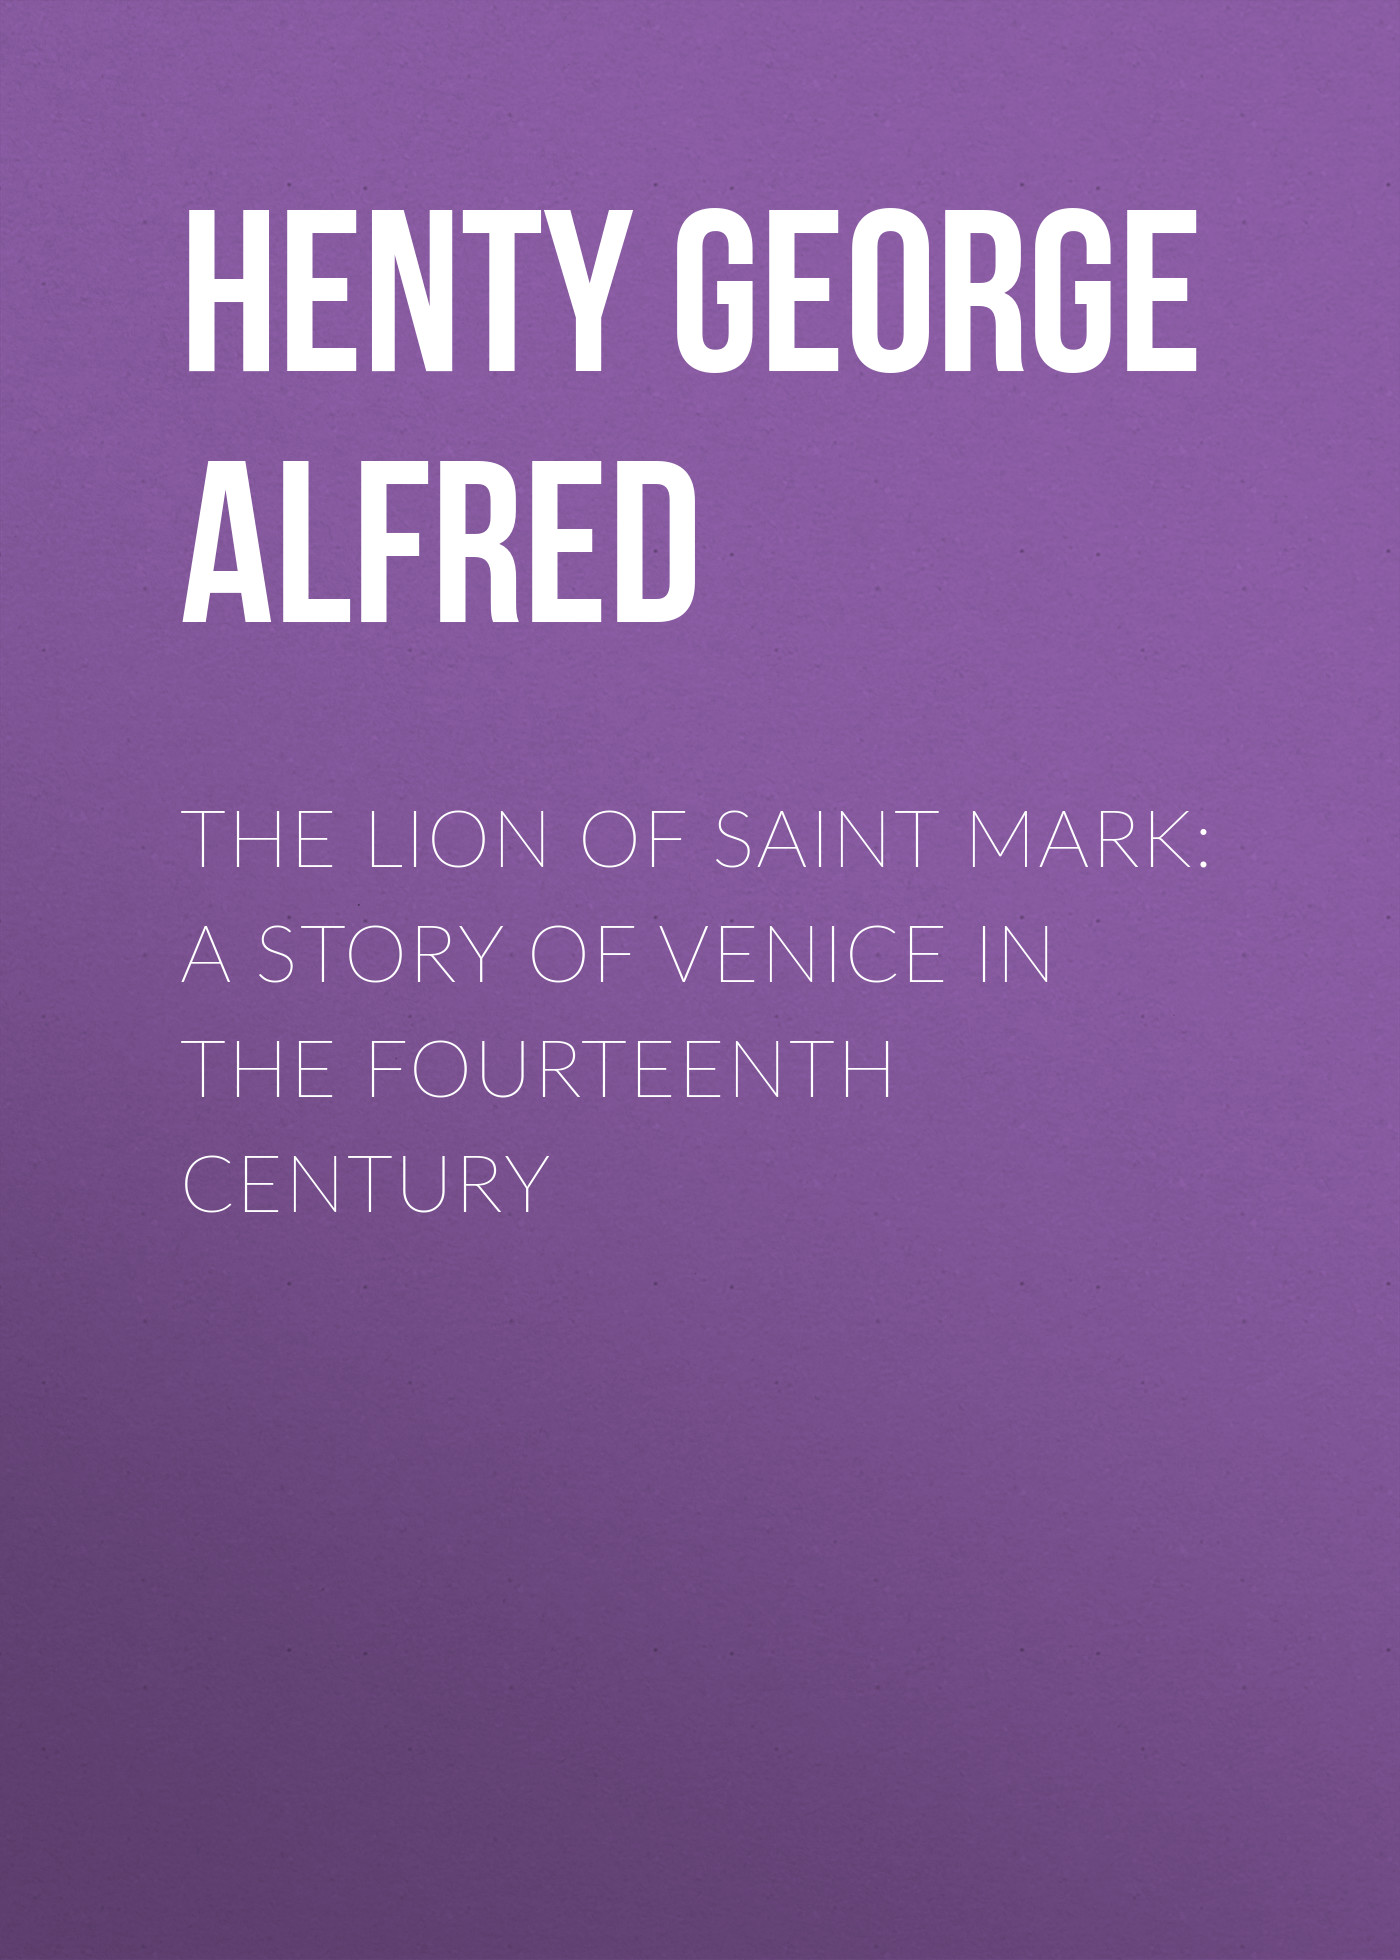 Henty George Alfred The Lion of Saint Mark: A Story of Venice in the Fourteenth Century